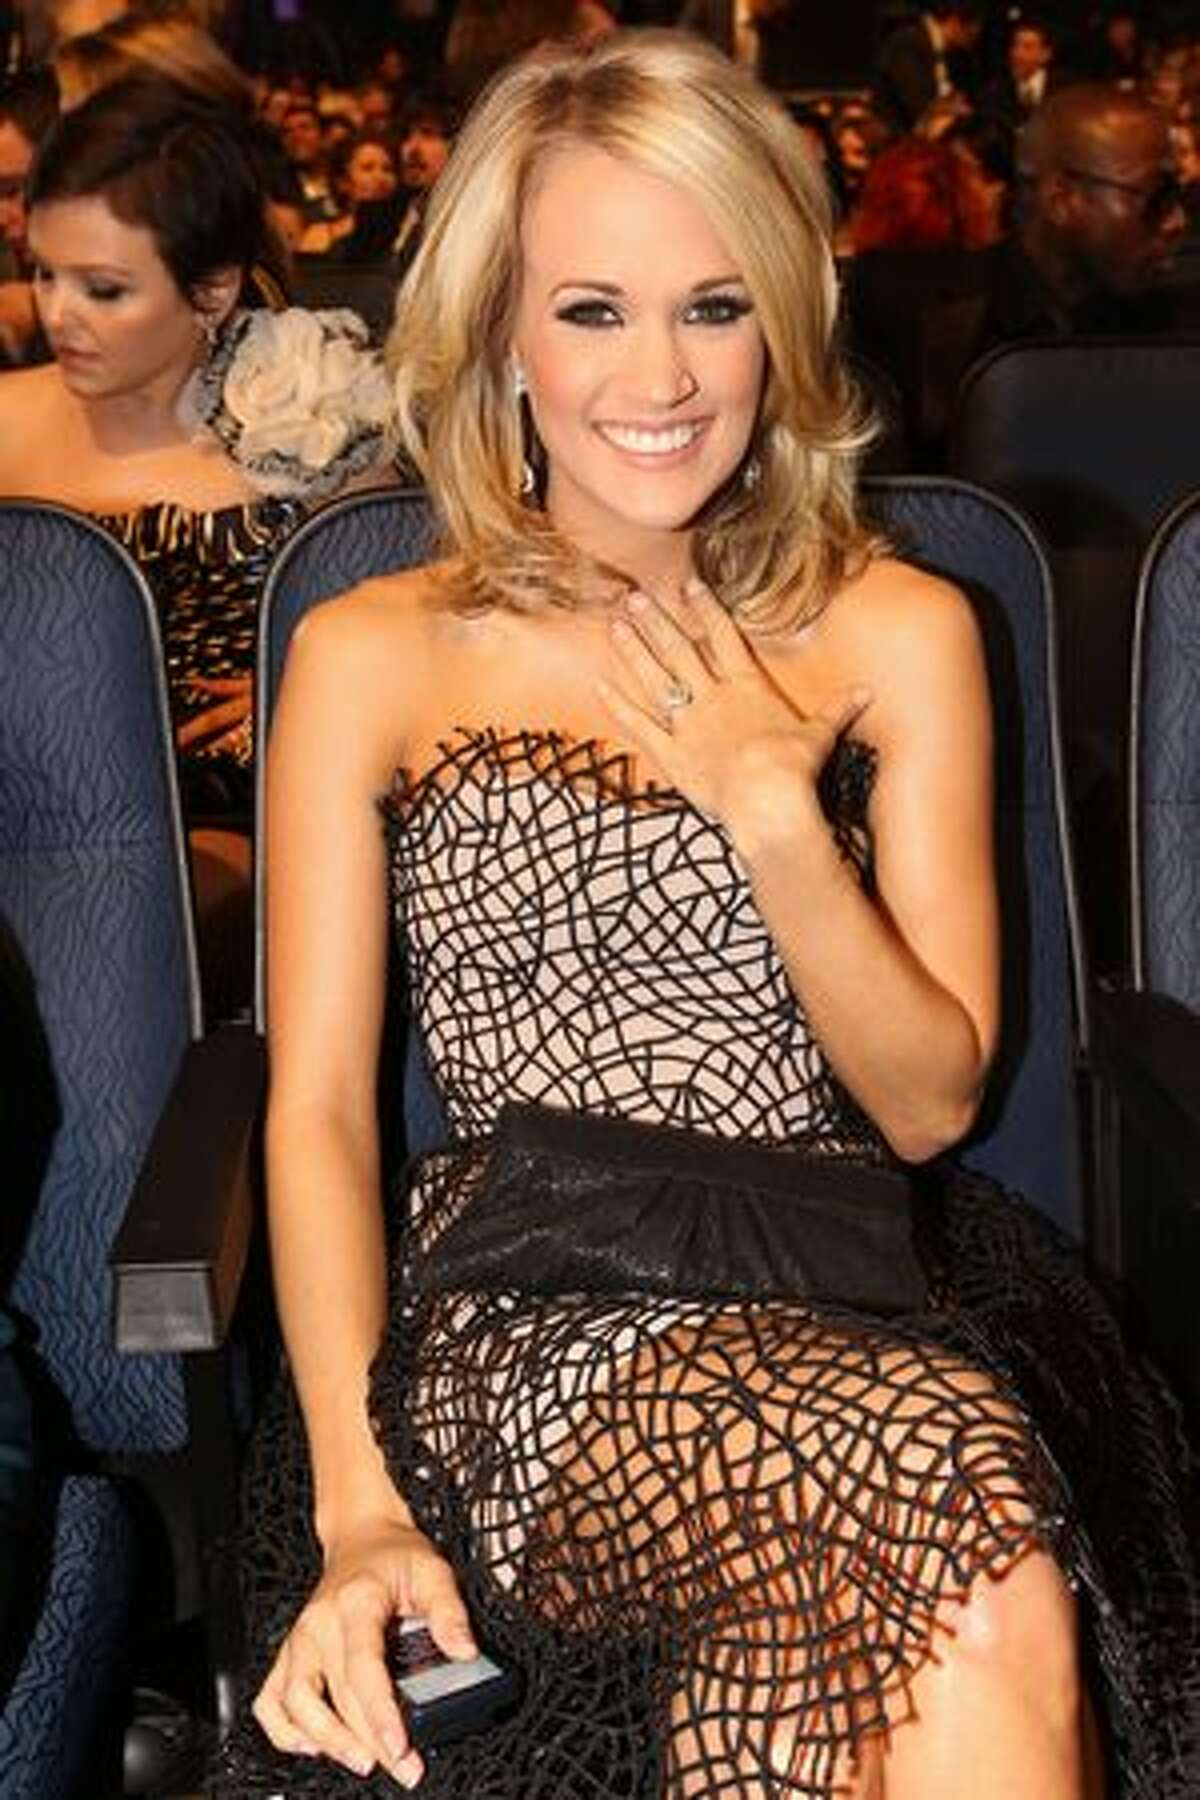 Singer Carrie Underwood poses in the audience.